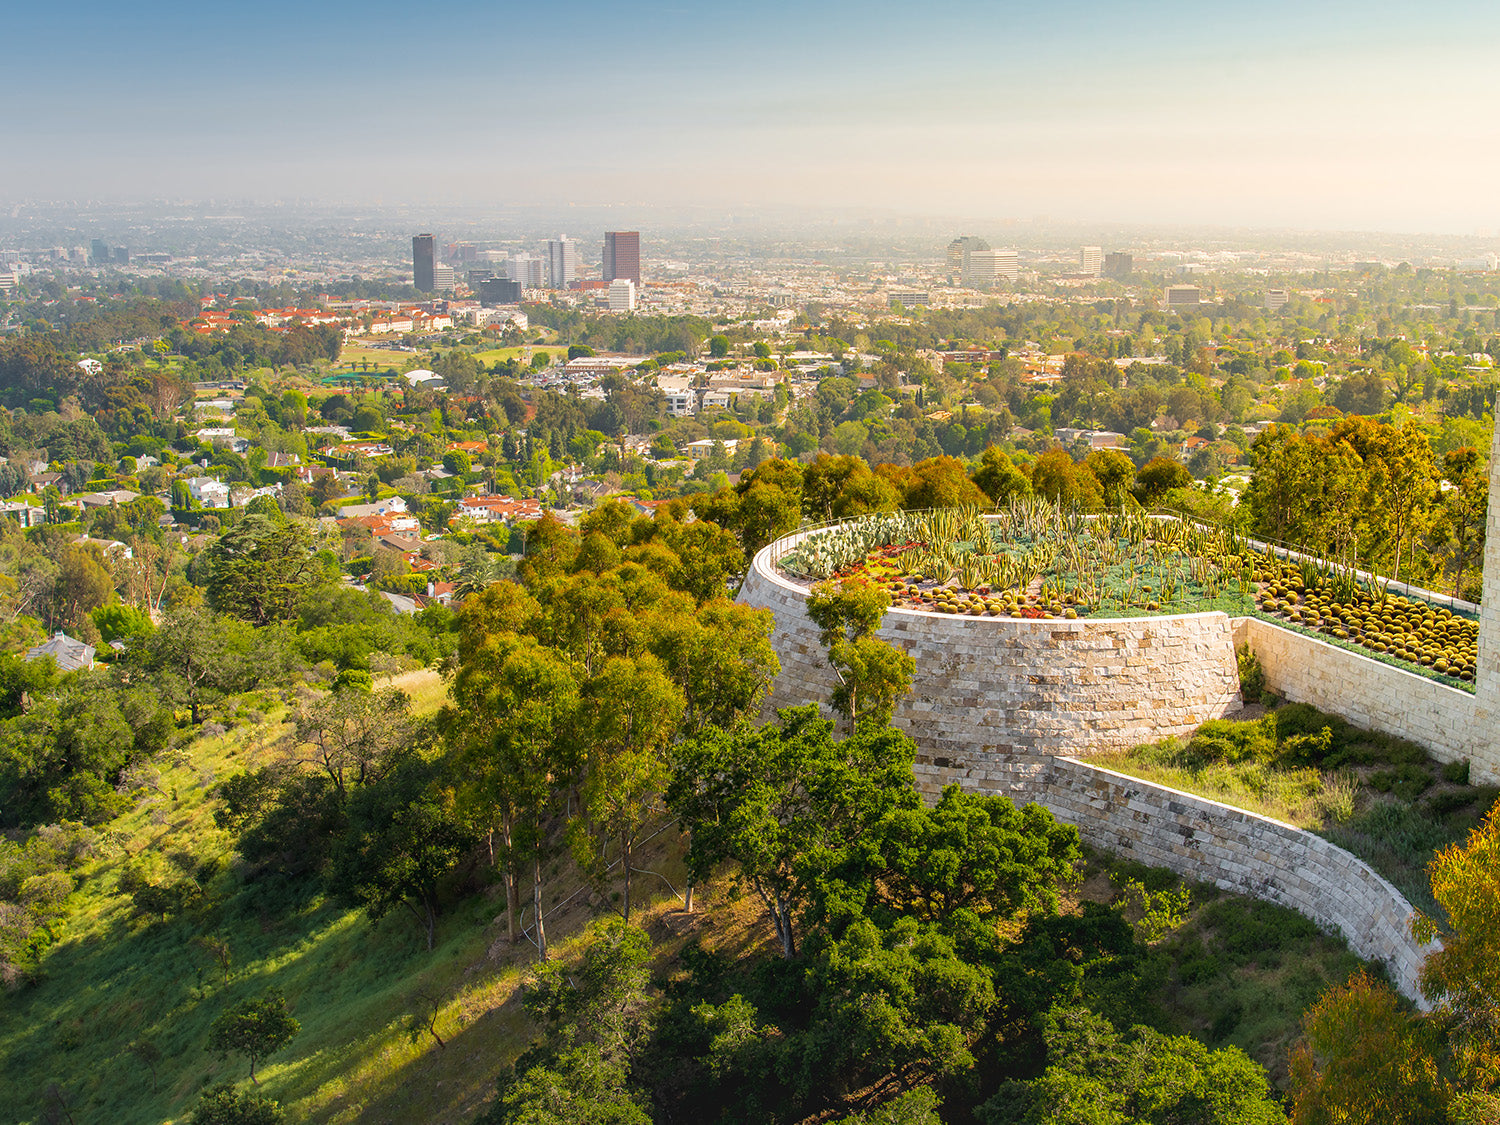 where to find the best botanical gardens in los angeles - getty museum